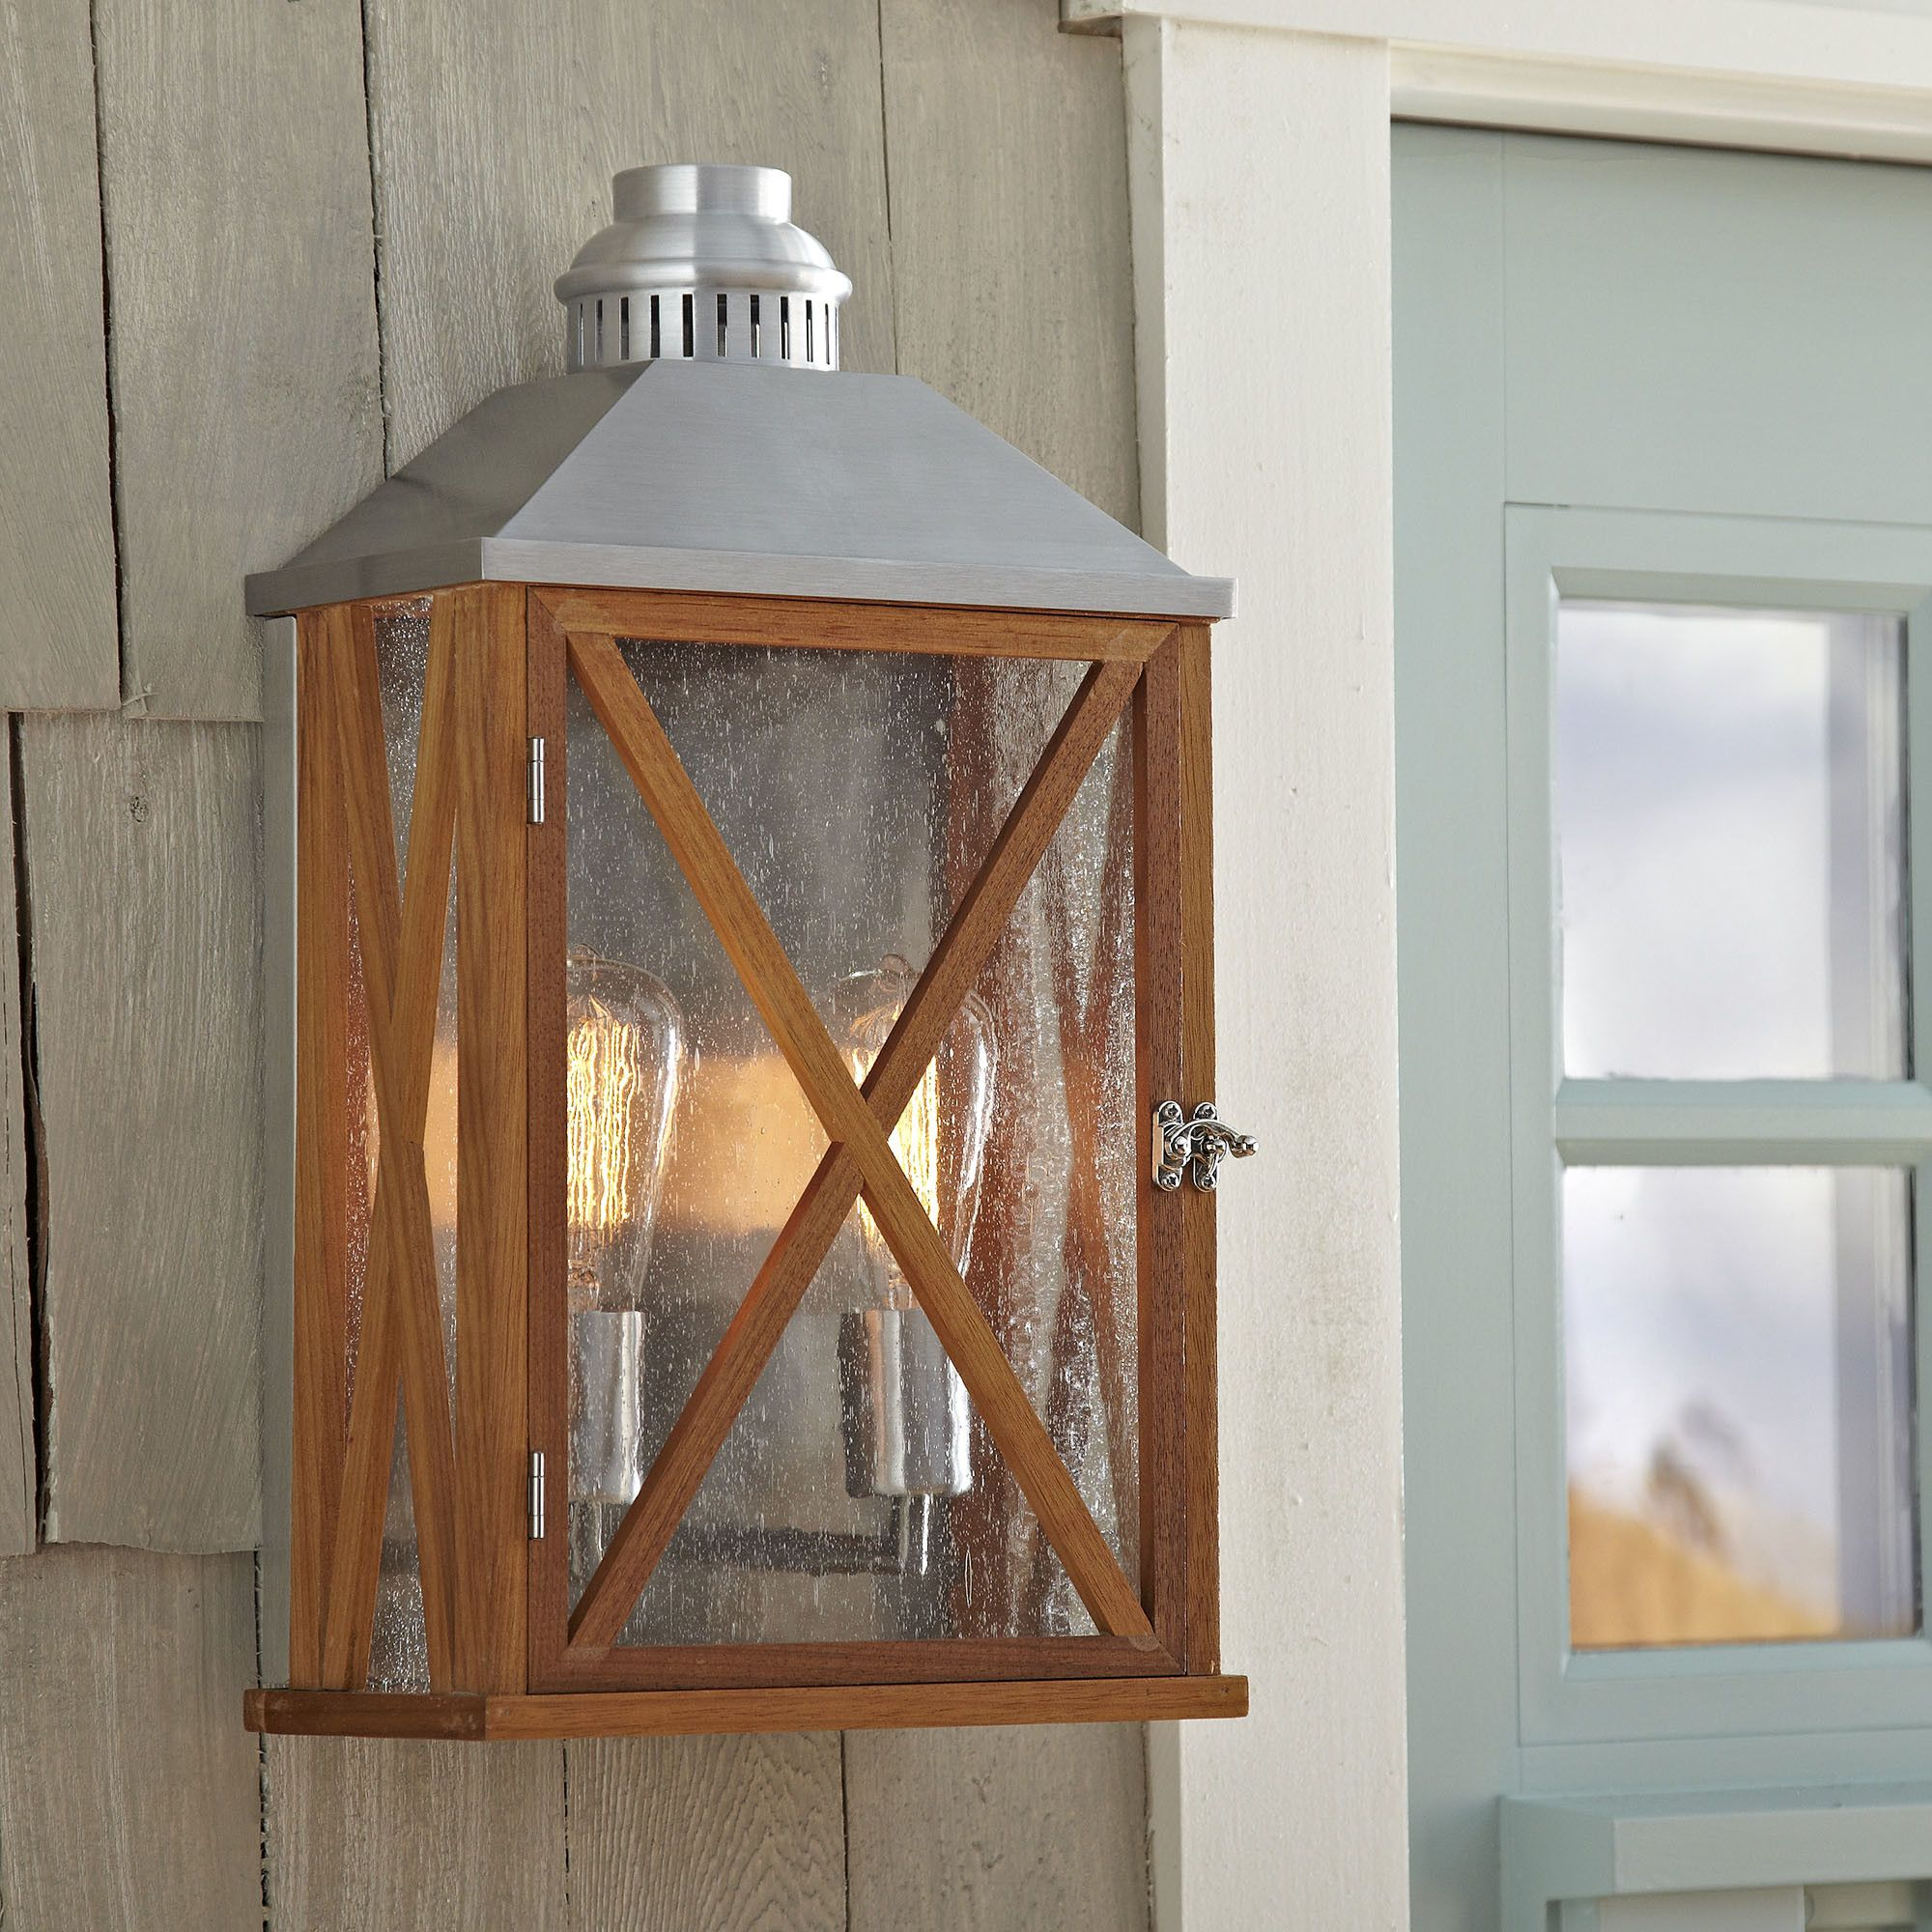 Sandy Bay 2-Light Lantern Sconce | Evoking remote shore houses and rustic camps, the Sandy Bay two-light lantern-style sconce brings ample light to walkways, breezeways, porches and more. Rated for outdoor use.